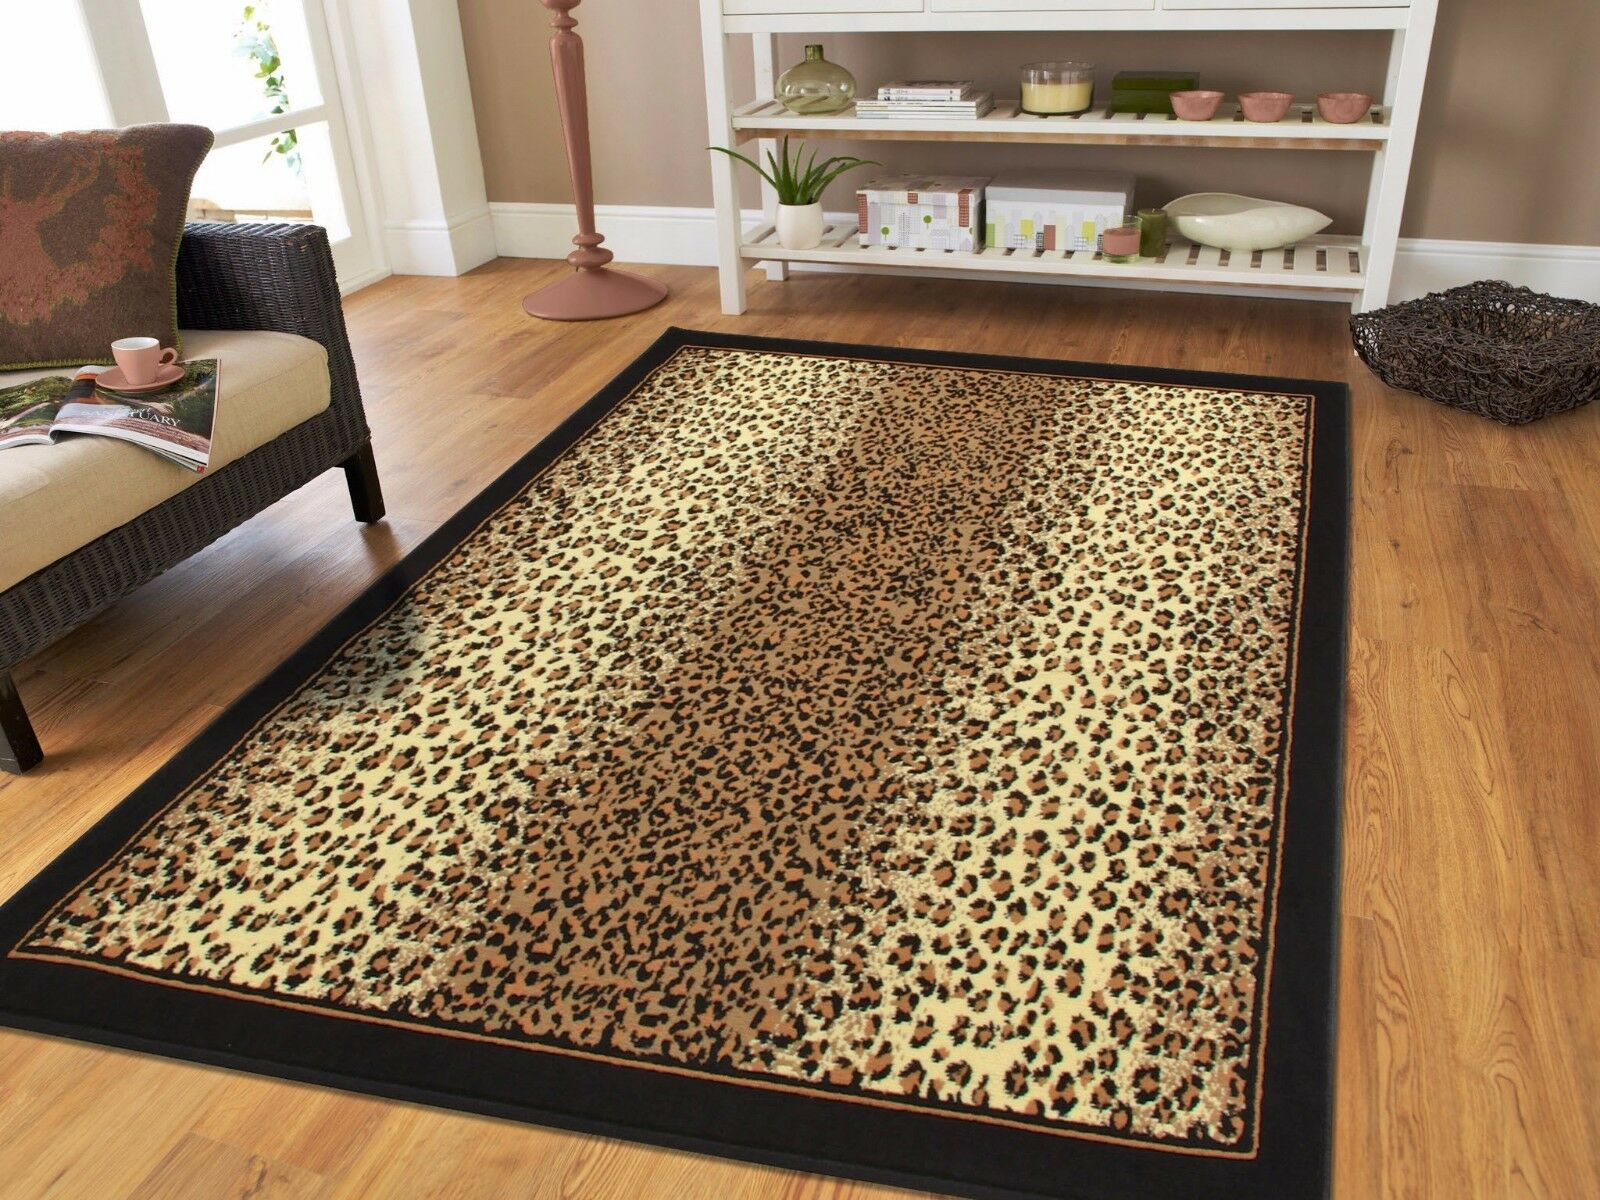 Rug Animal Print Rectangle Leopard Rugs